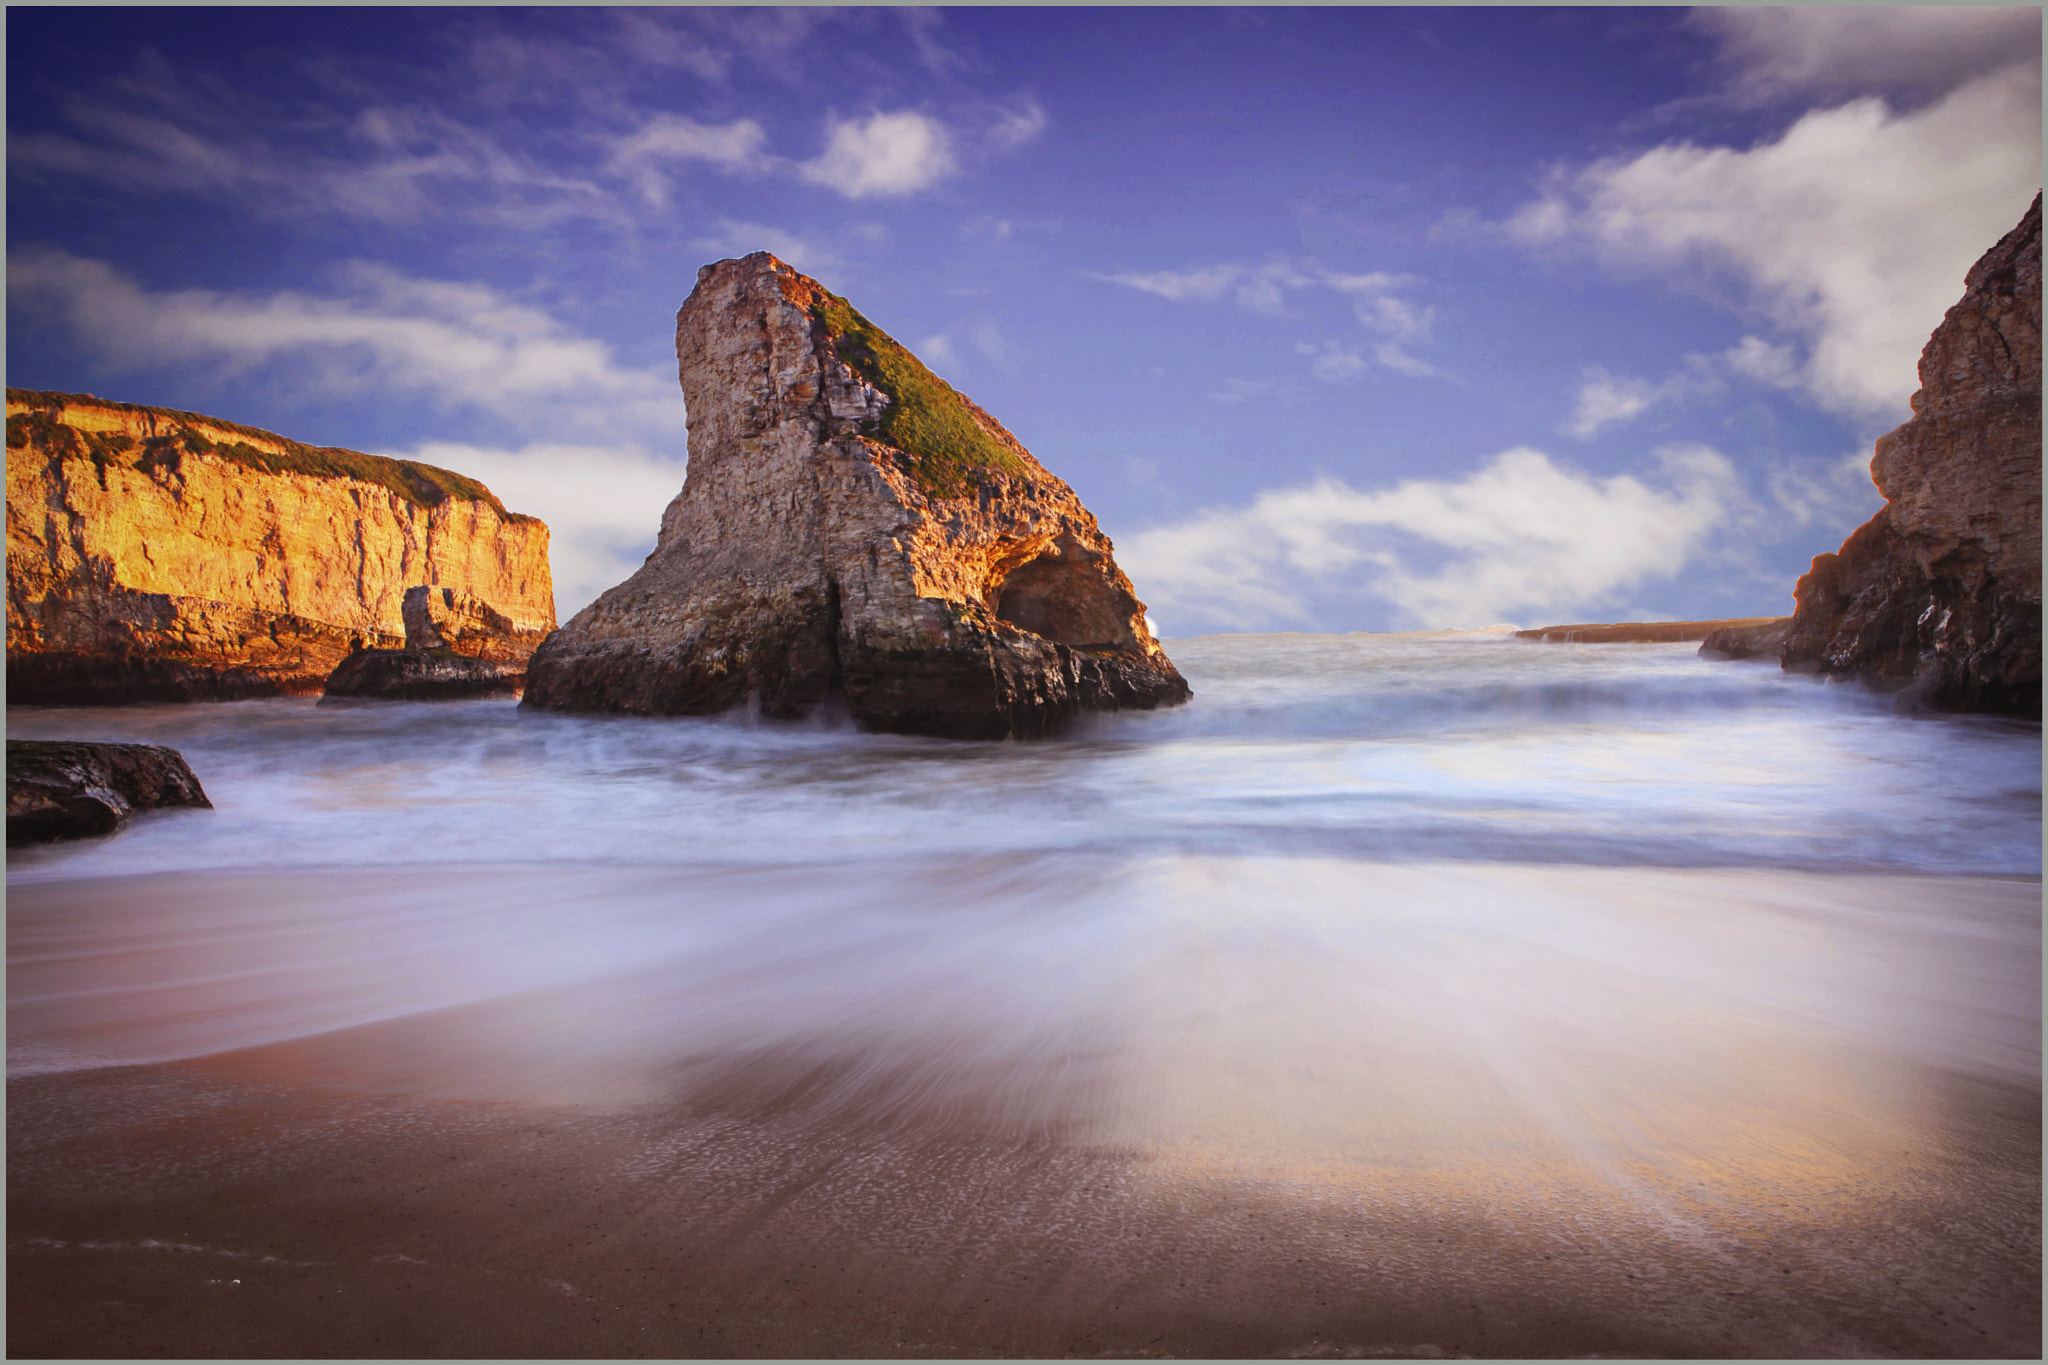 Photograph Shark fin cove. by Celso Adolfo on 500px